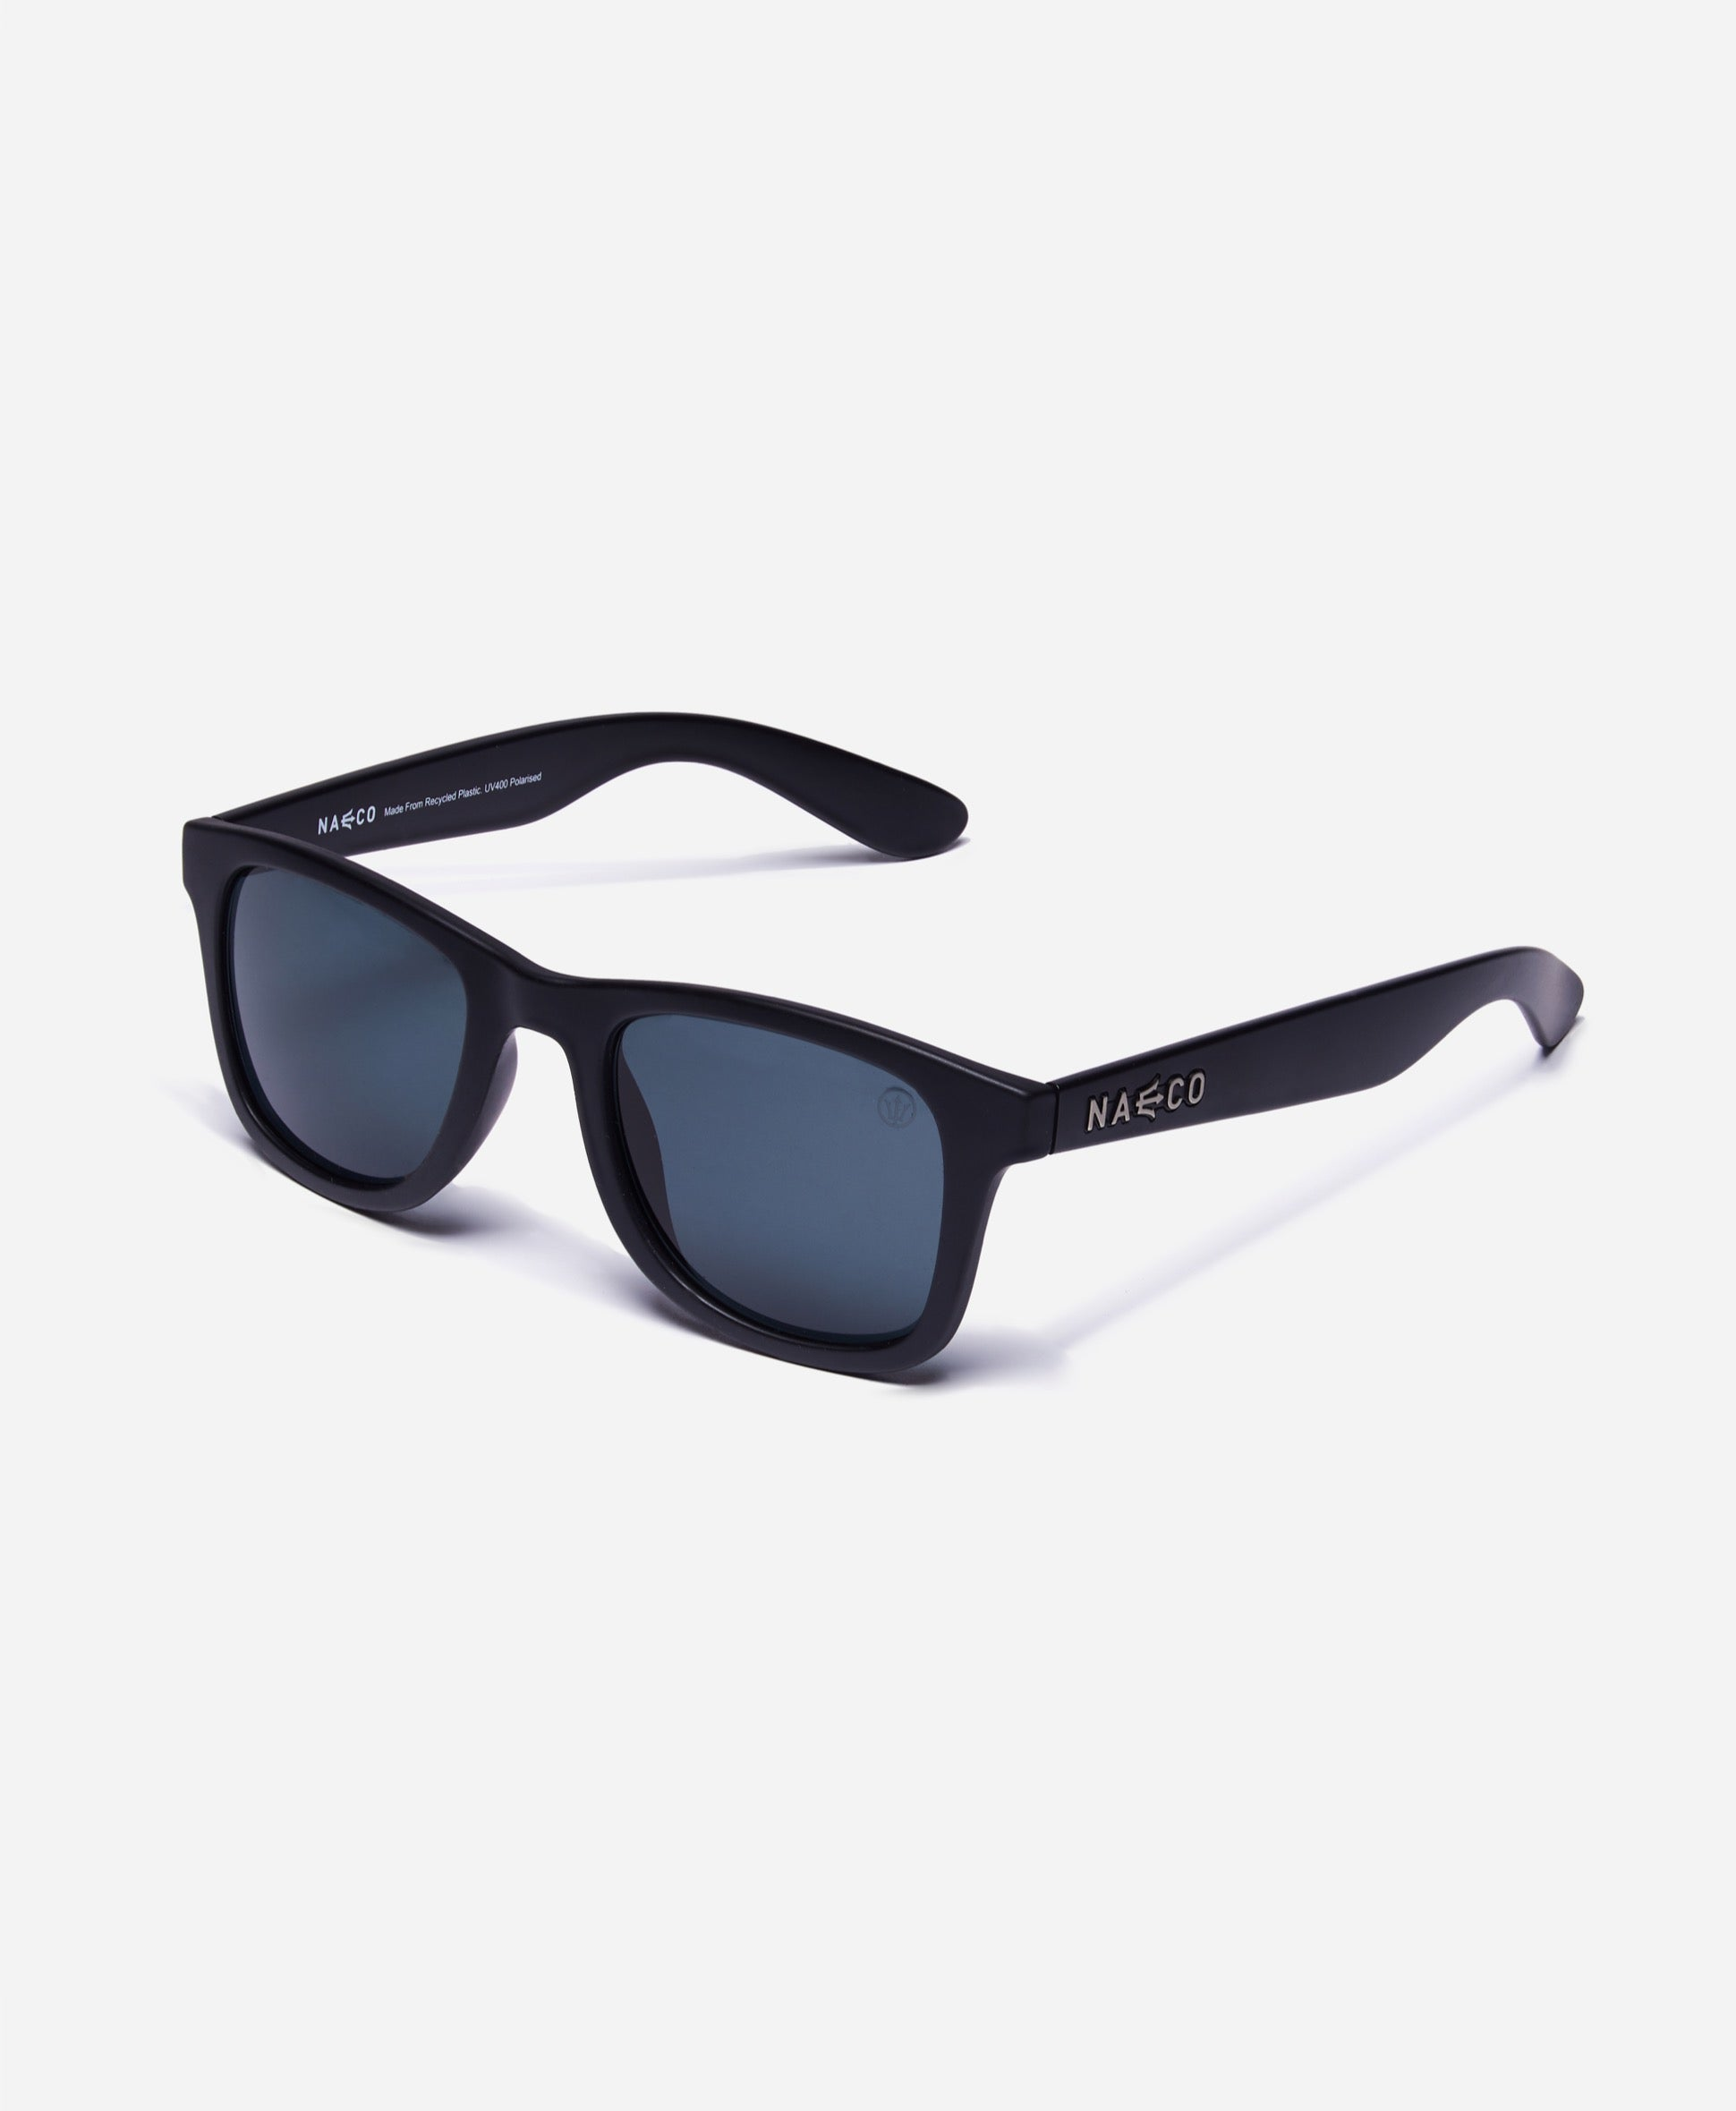 Trident UV Polarised Sunglasses - Matte Frame - Orca Black